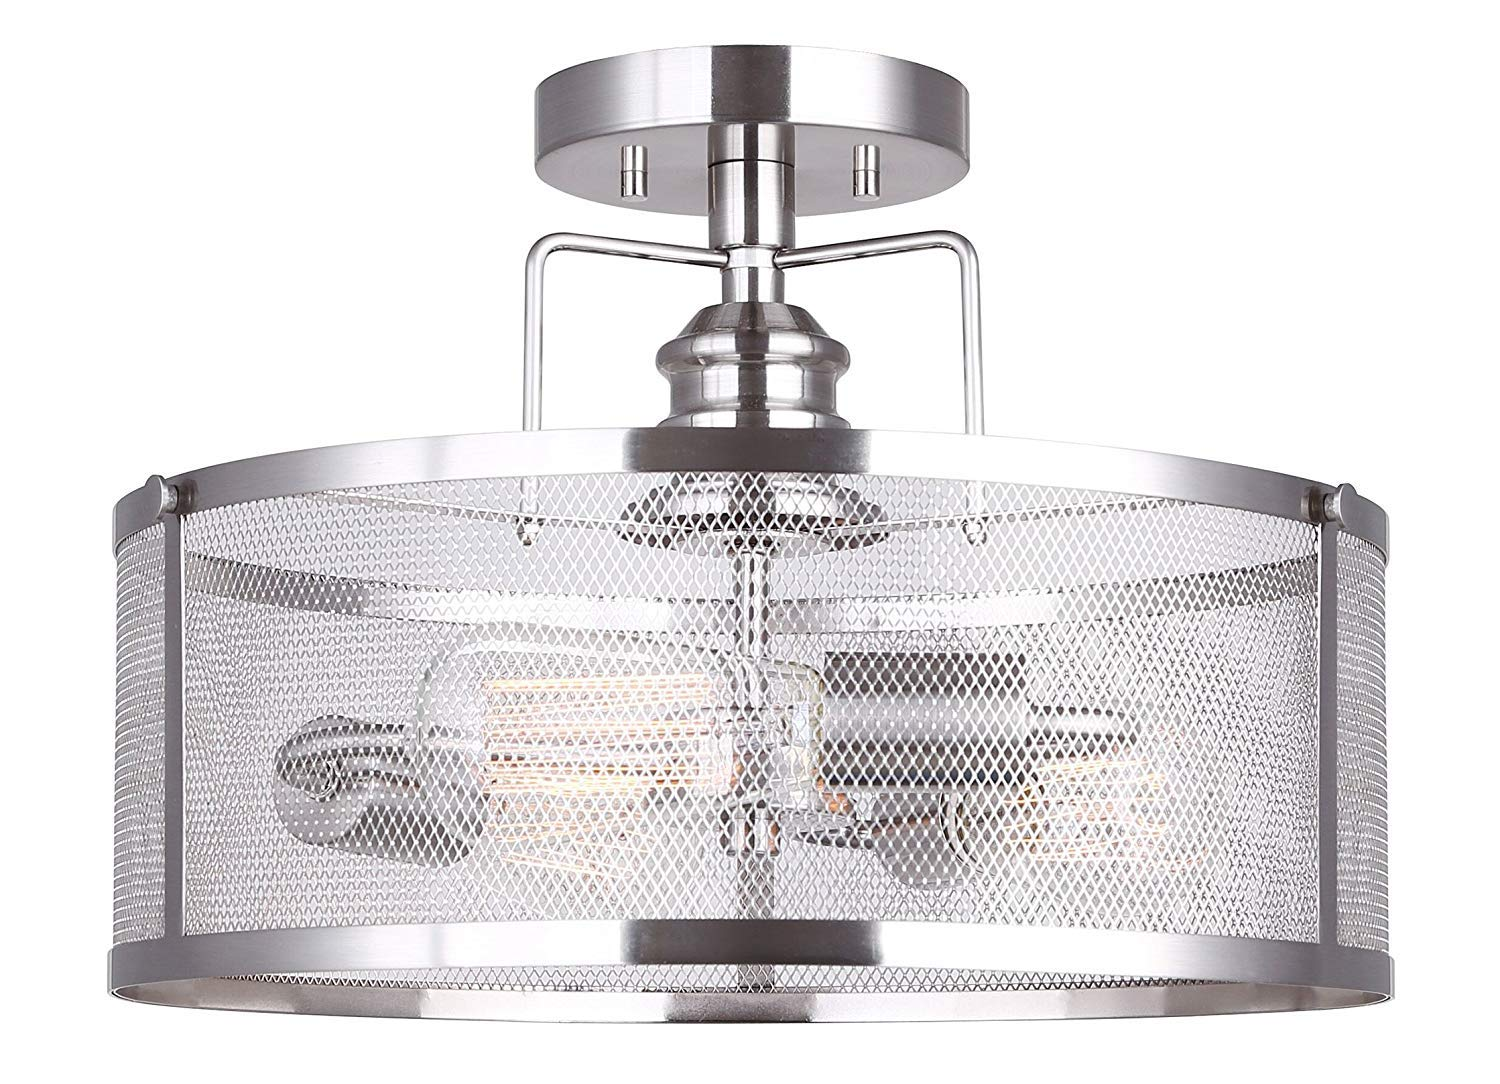 Dysmio Lighting One-Light Adjustable Mini Pendant with Perforated Cylindrical Metal Shade, Brushed Nickel Finish